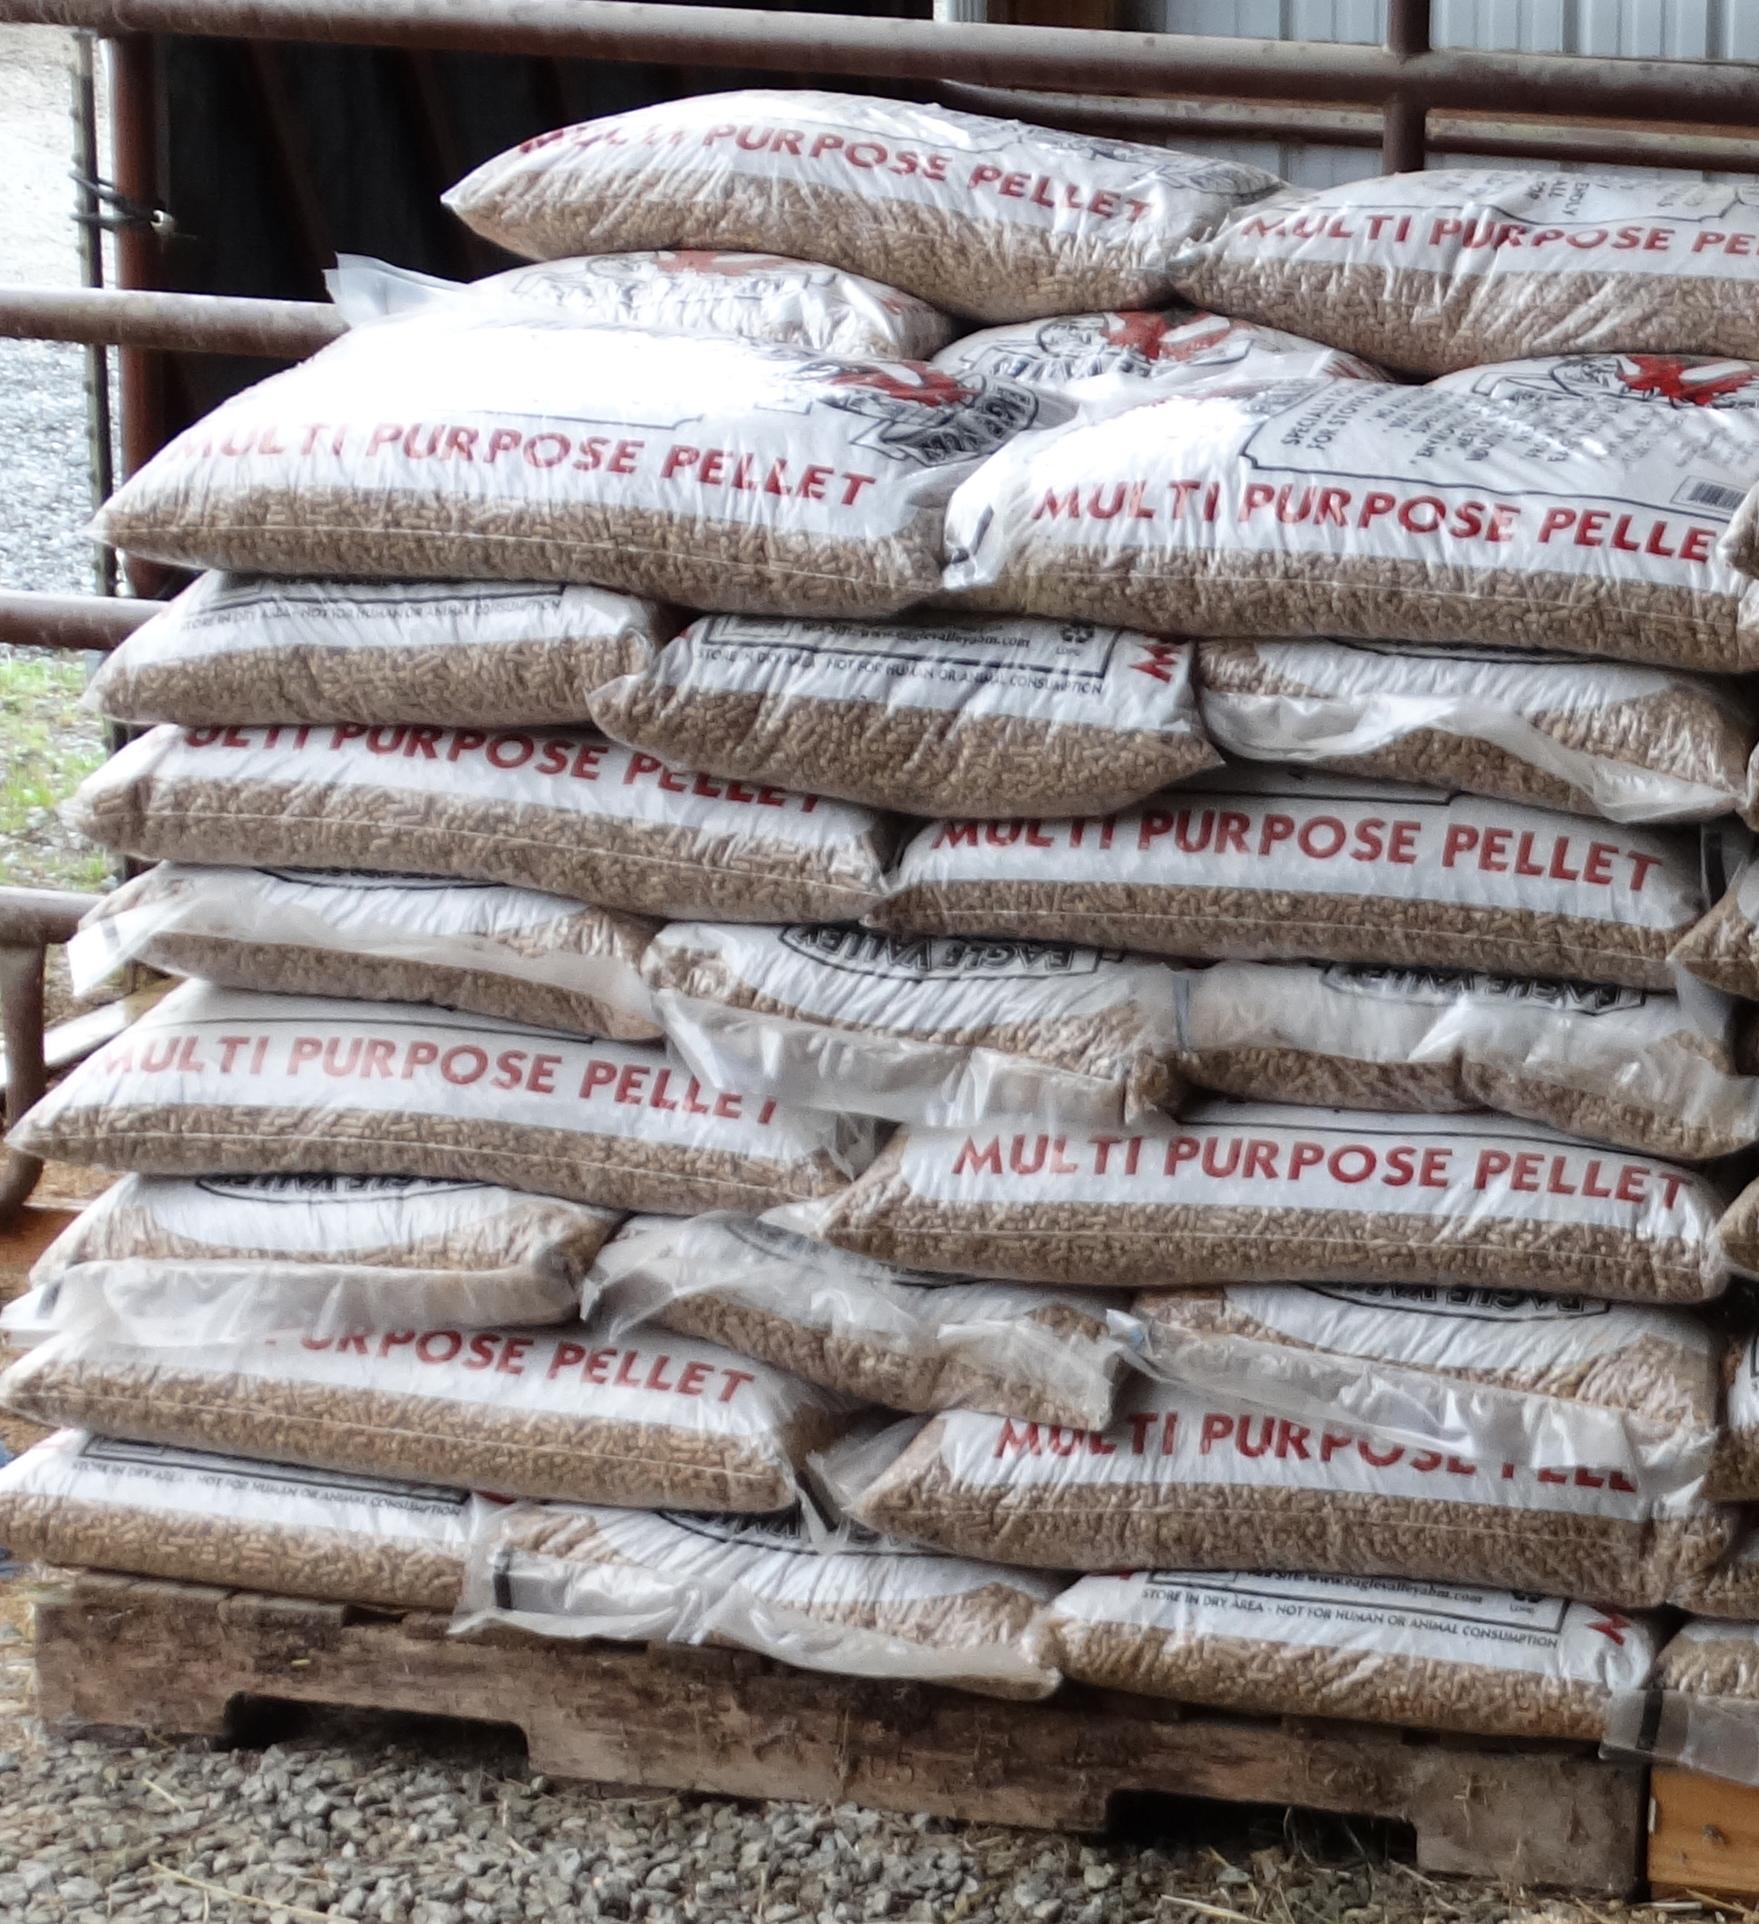 Pelleted Bedding 2.jpg